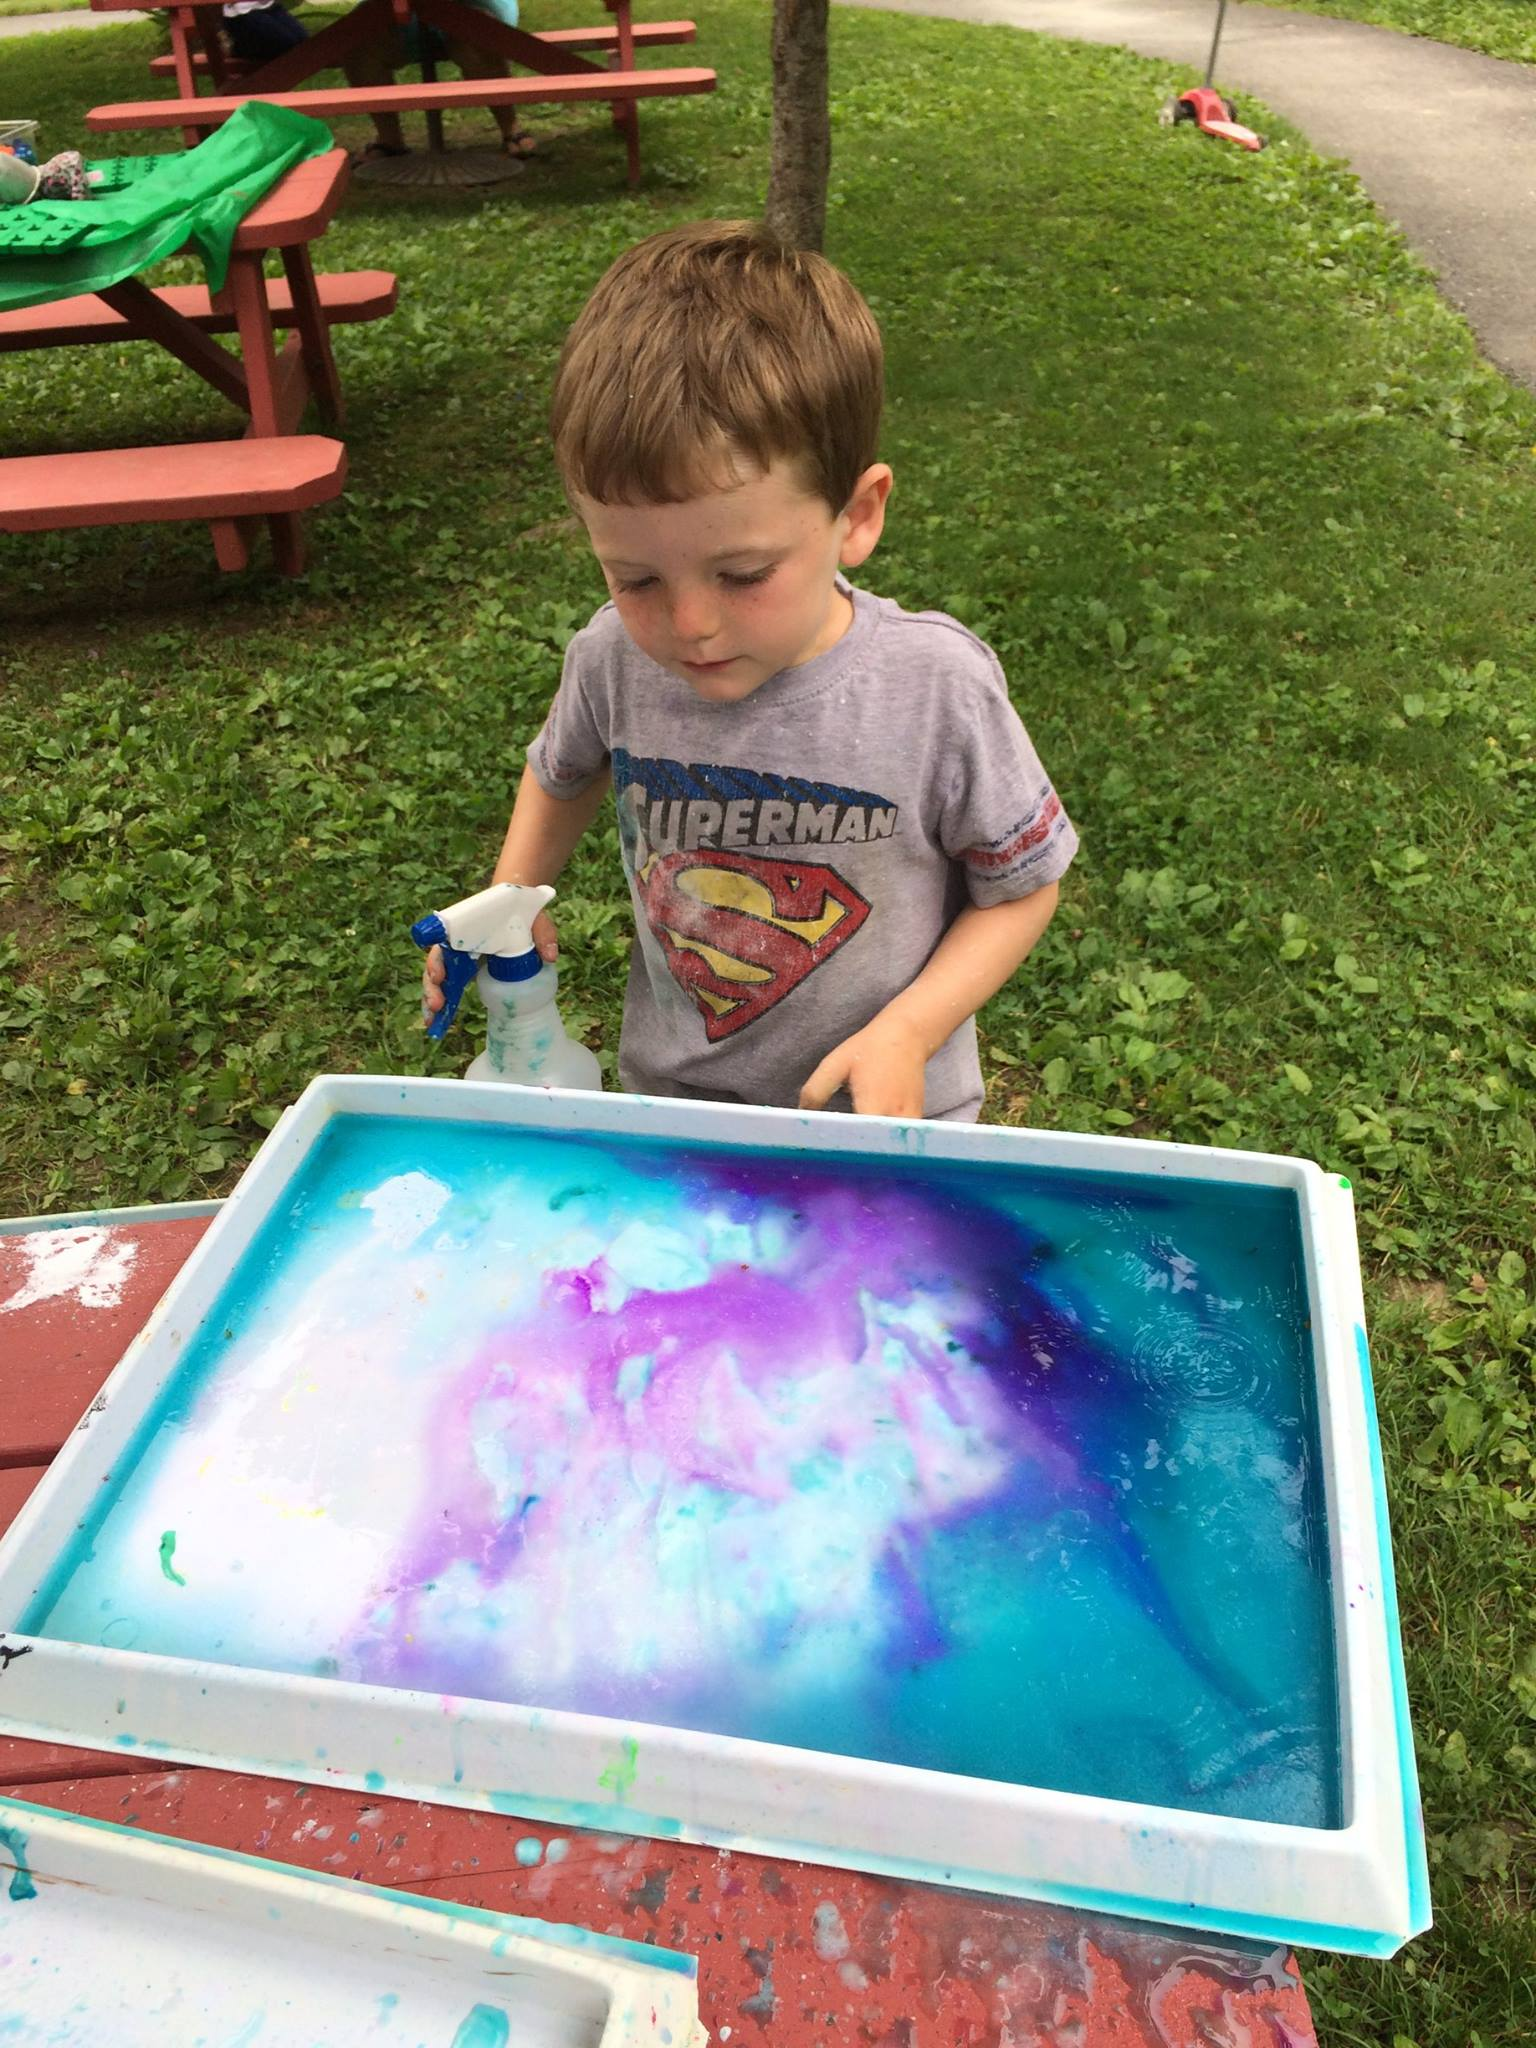 preschool child creating art with water and paint